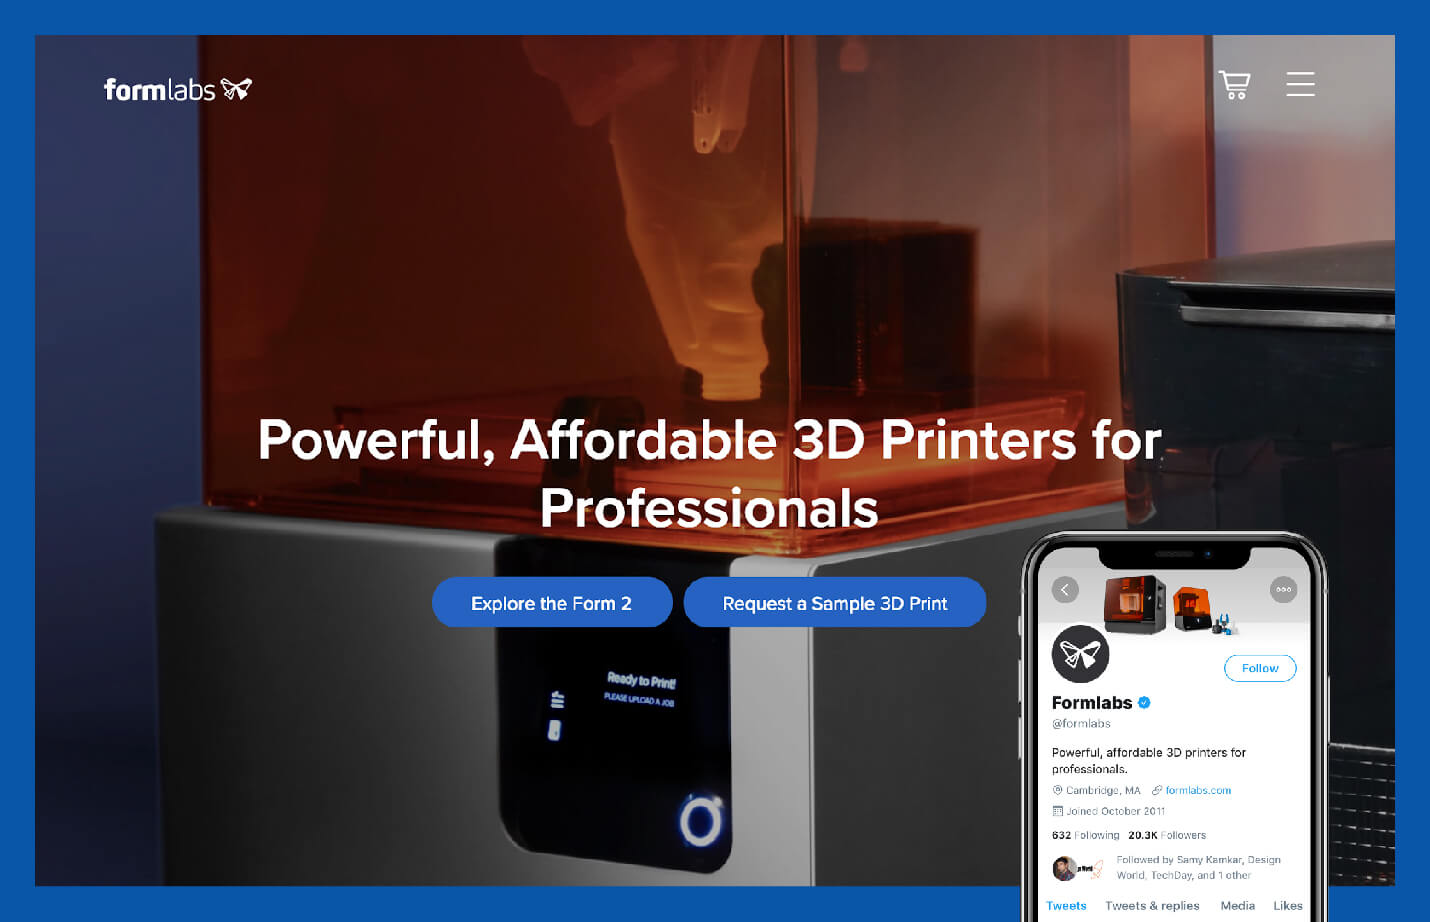 value proposition example from formlabs